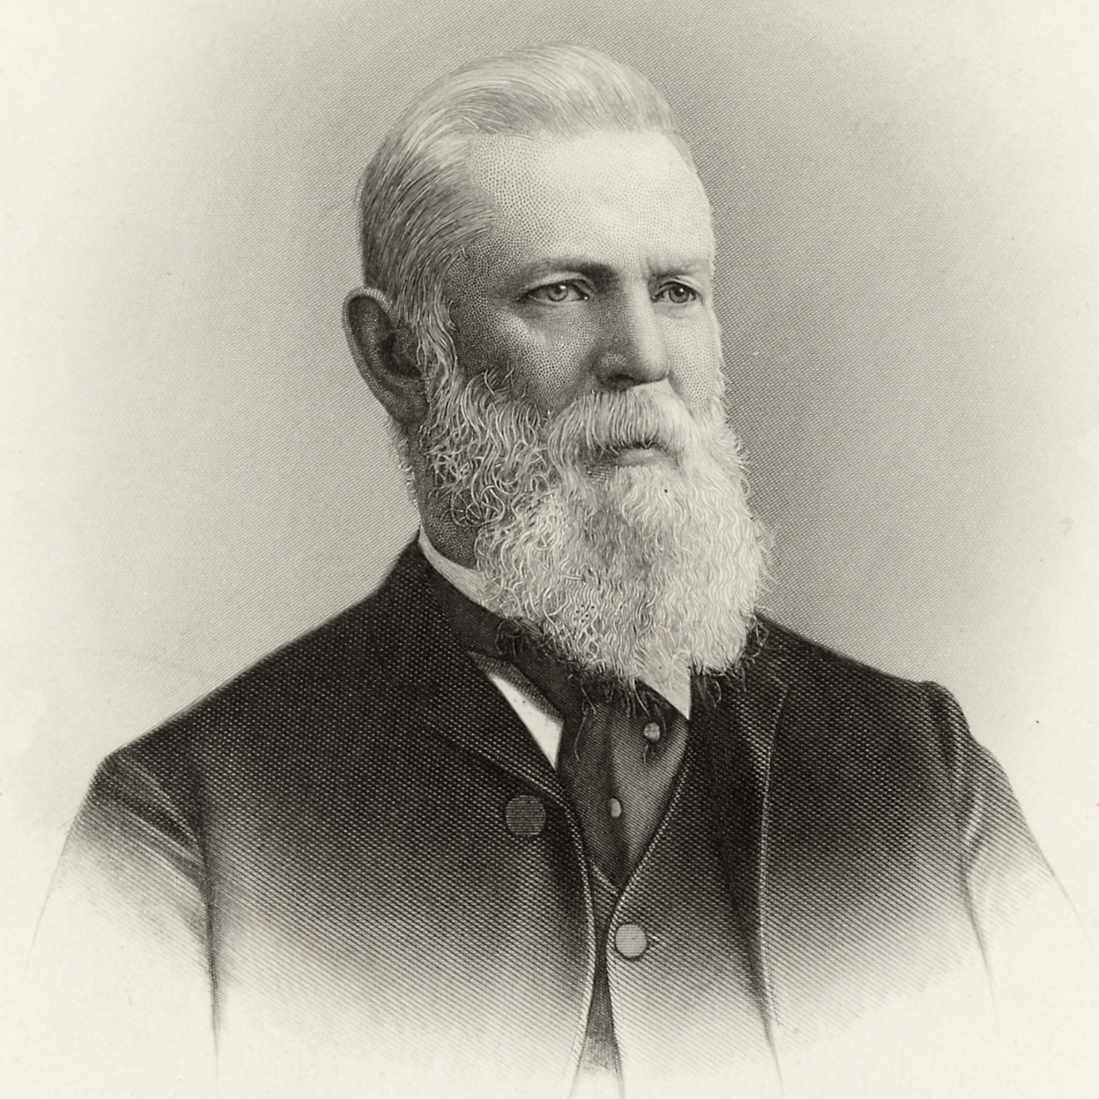 Canute Peterson in the 1890s